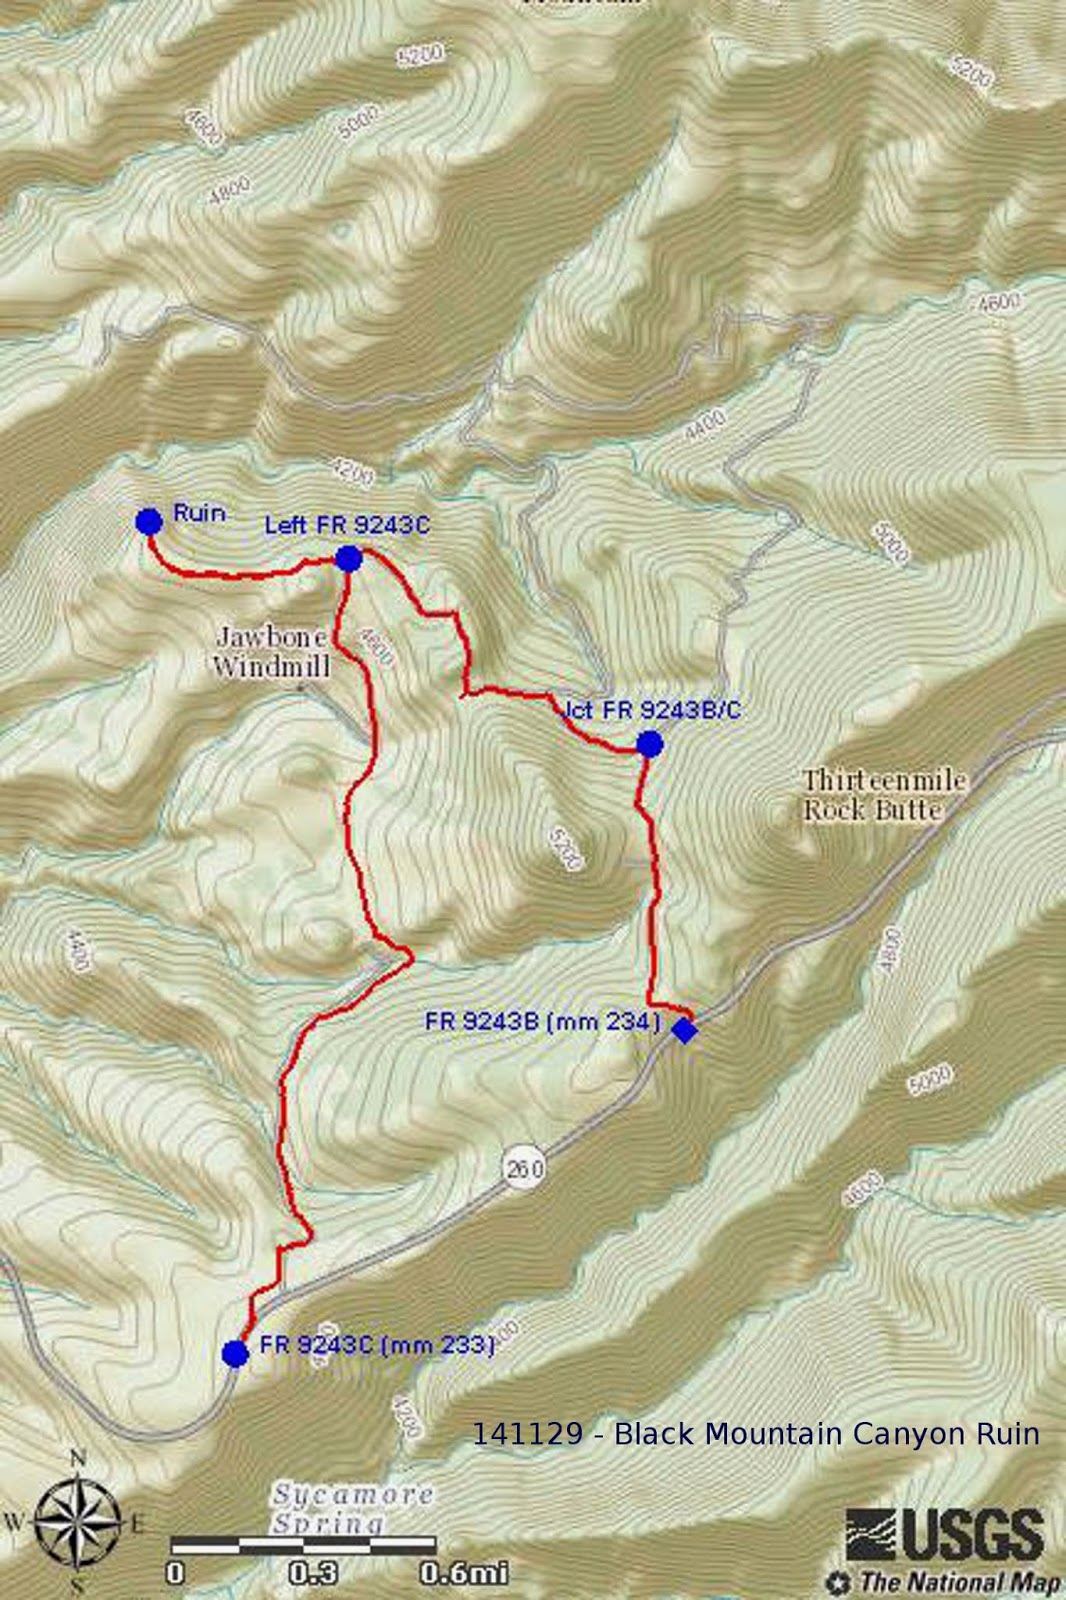 our gps track is shown in red on the included map next page and various points of interest are labeled